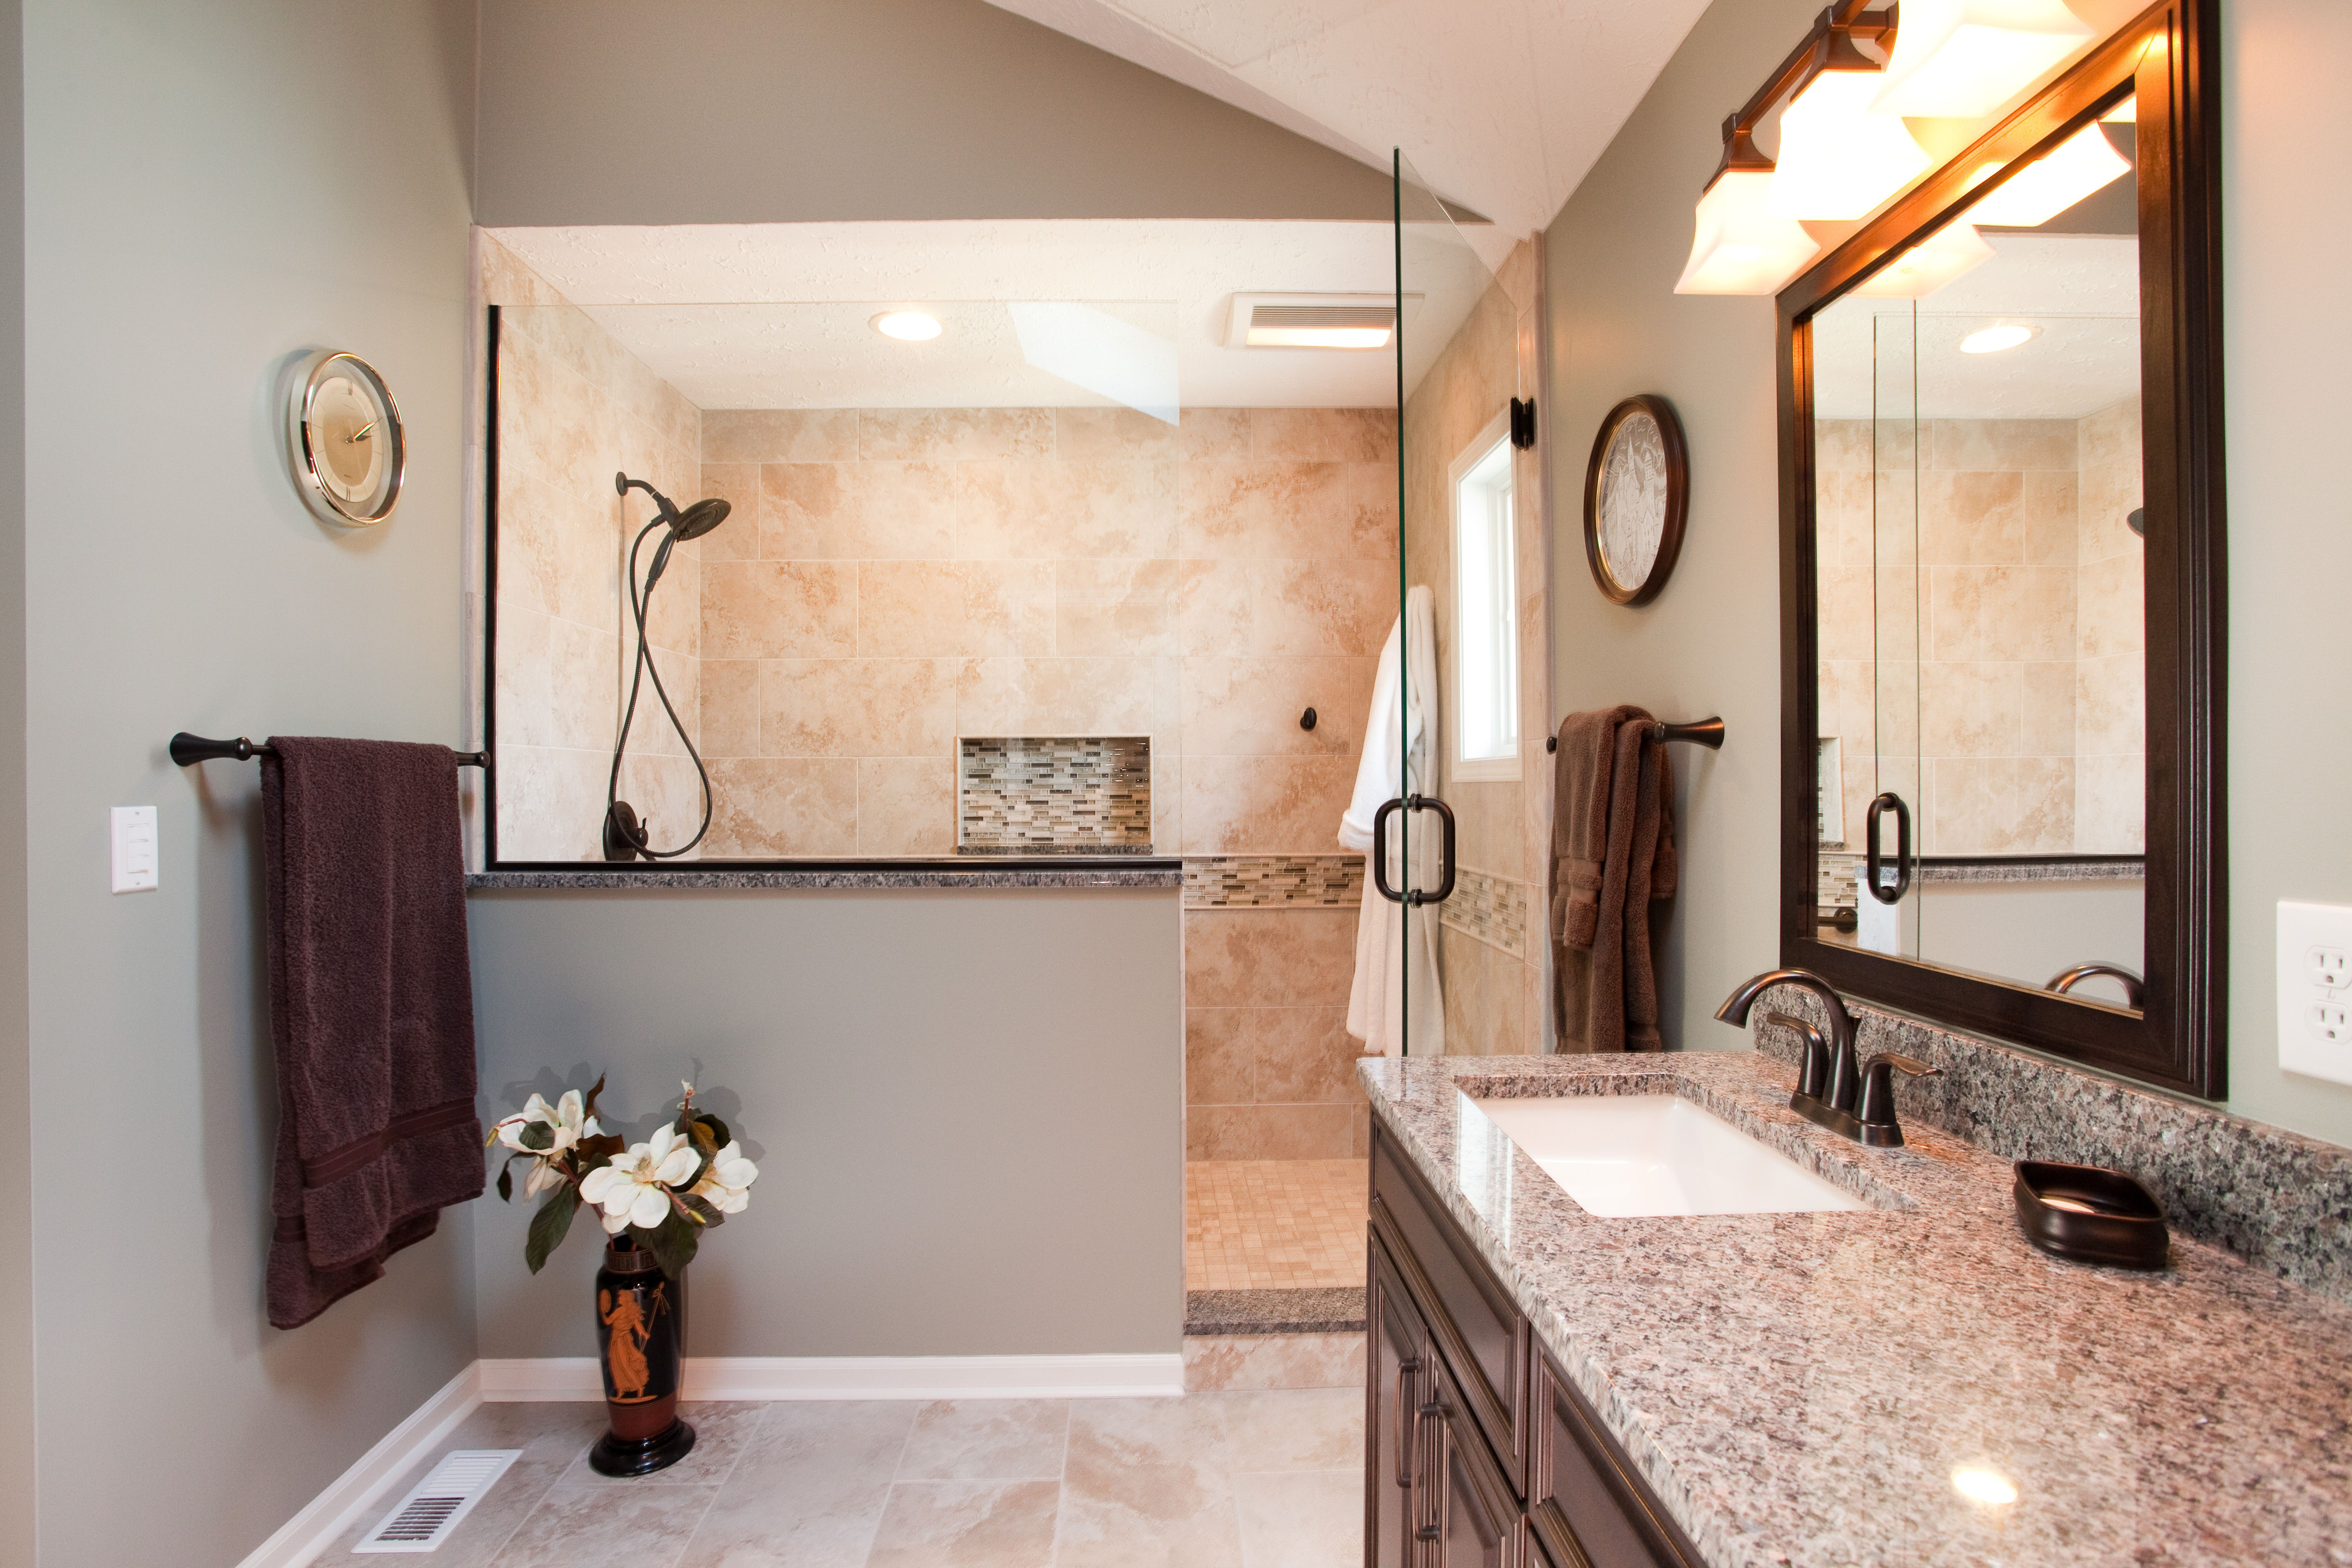 Oil Rubbed Bronze Bathroom Fixtures bathrooms with bronze fixtures earth toned vanity with oil rubbed